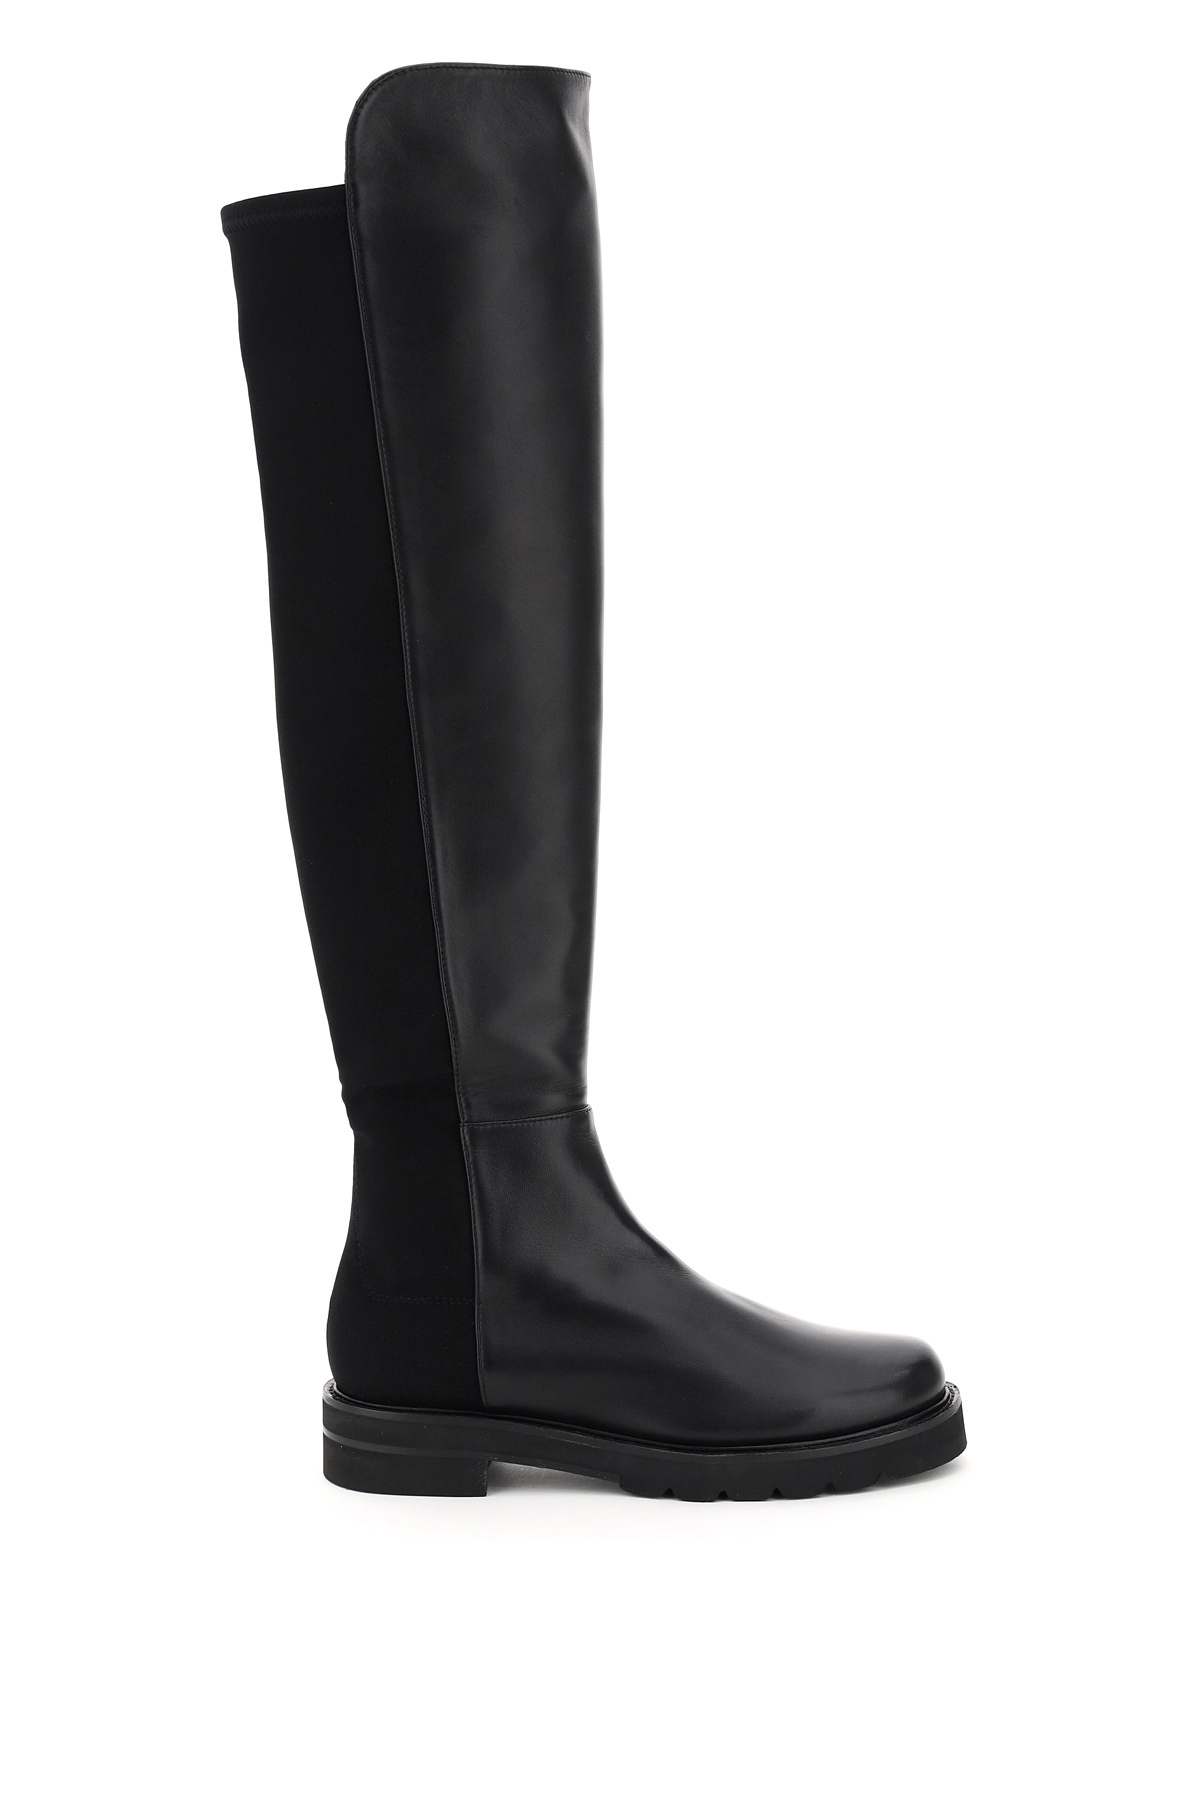 STUART WEITZMAN 5050 LIFT LEATHER AND STRETCH BOOTS